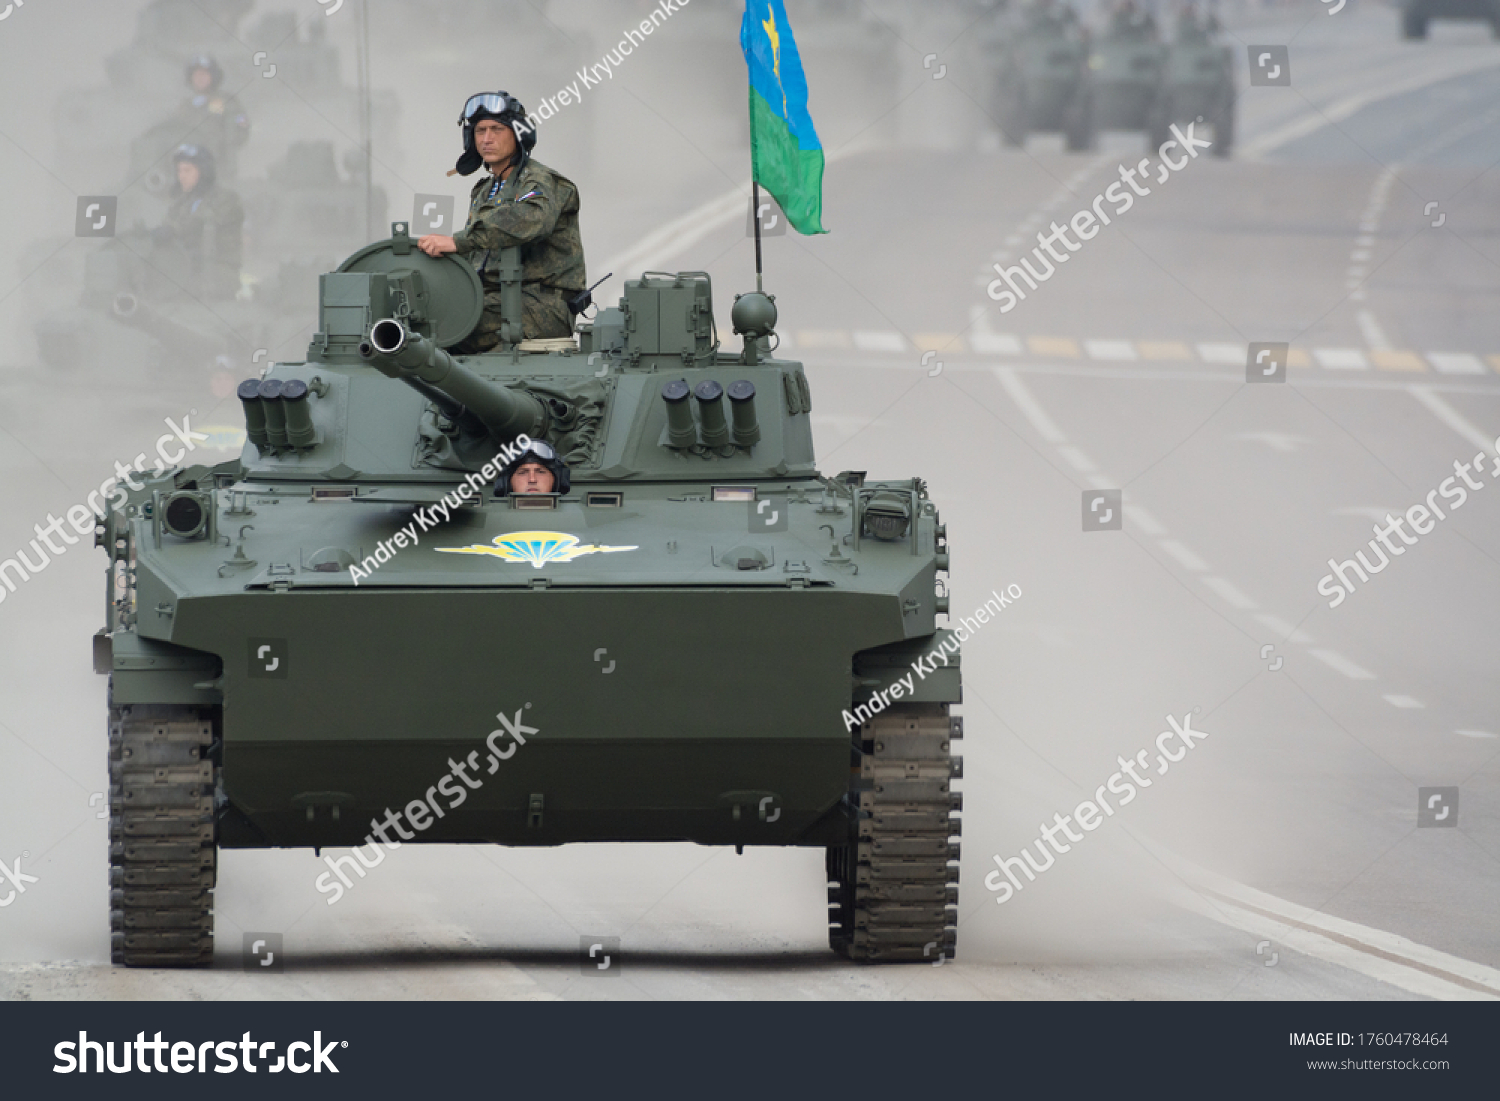 https://image.shutterstock.com/z/stock-photo-june-moscow-russia-the-bmd-m-goes-to-red-square-to-participate-in-the-rehearsal-of-the-1760478464.jpg